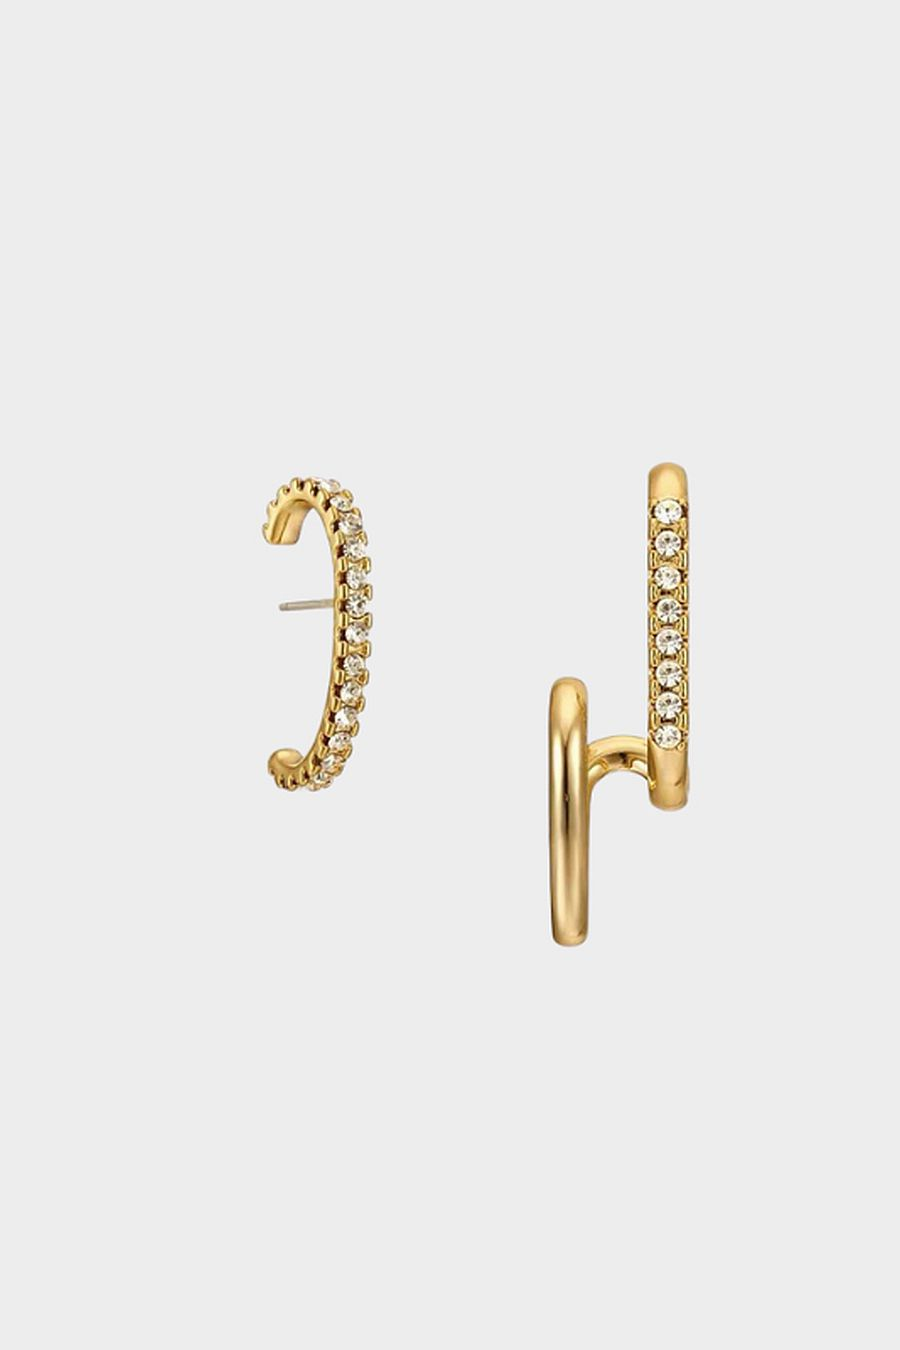 Oma The Label The Lydia Earrings